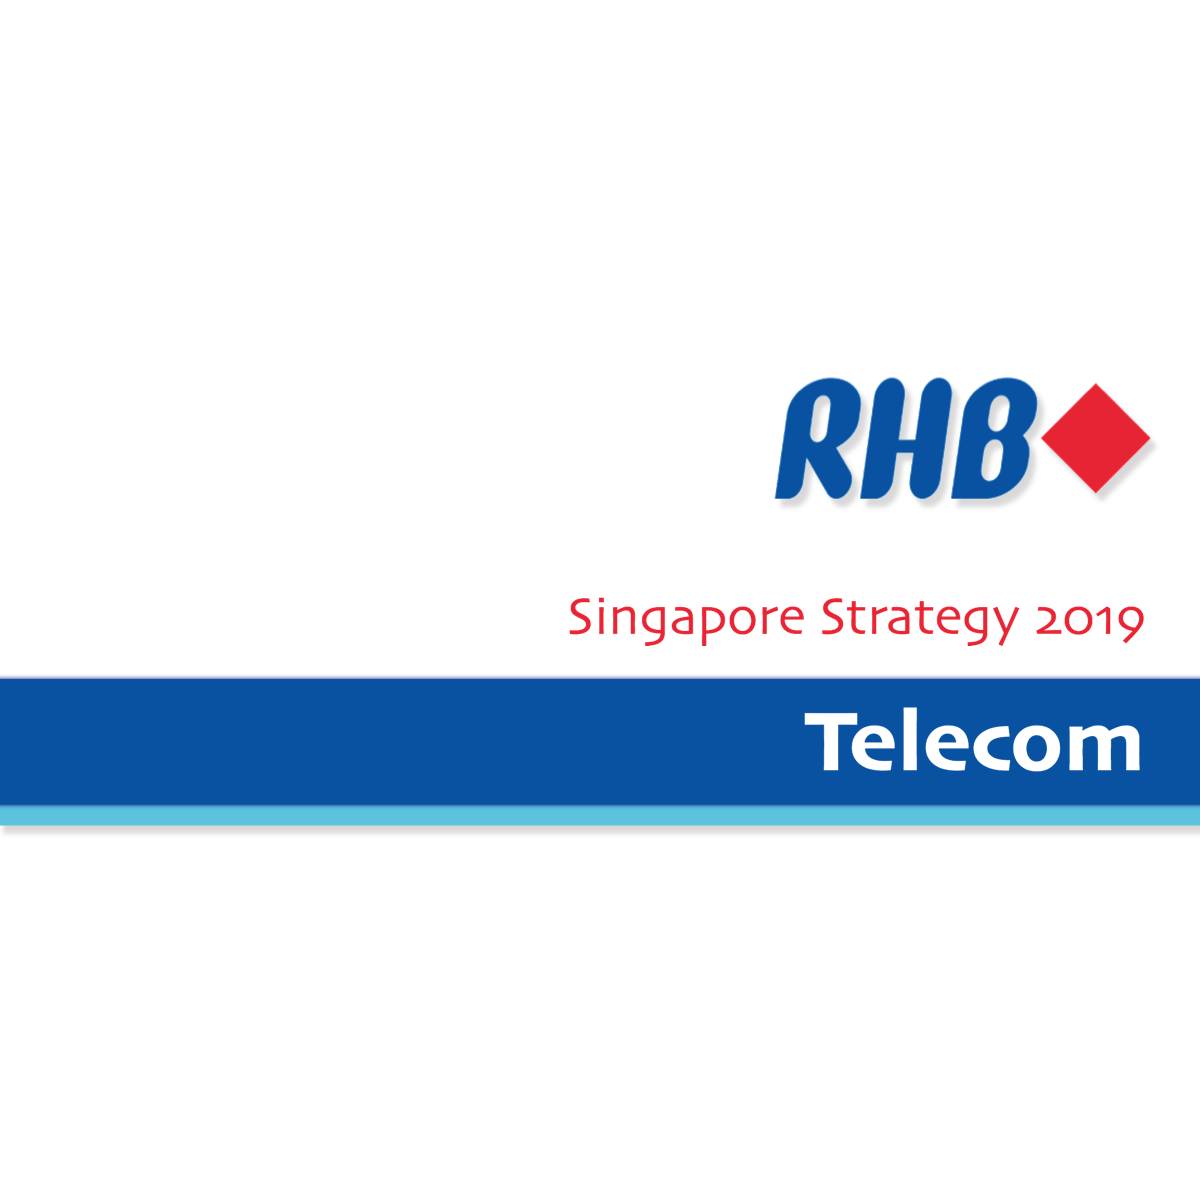 Singapore Strategy 2019 ~ Telecommunication Sector - RHB Research | SGinvestors.io